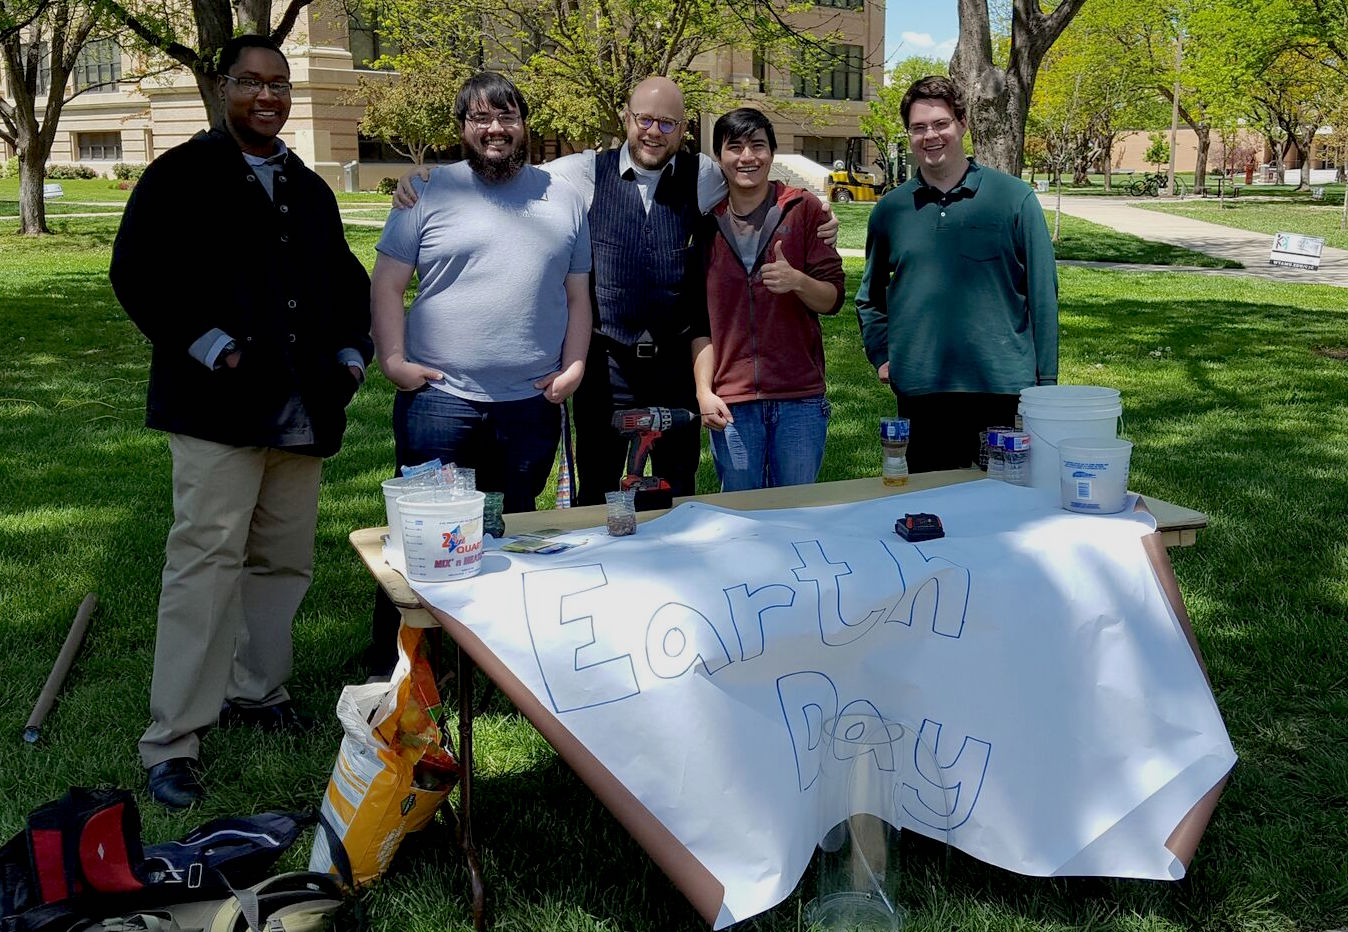 Students and professors outside together on Earth Day